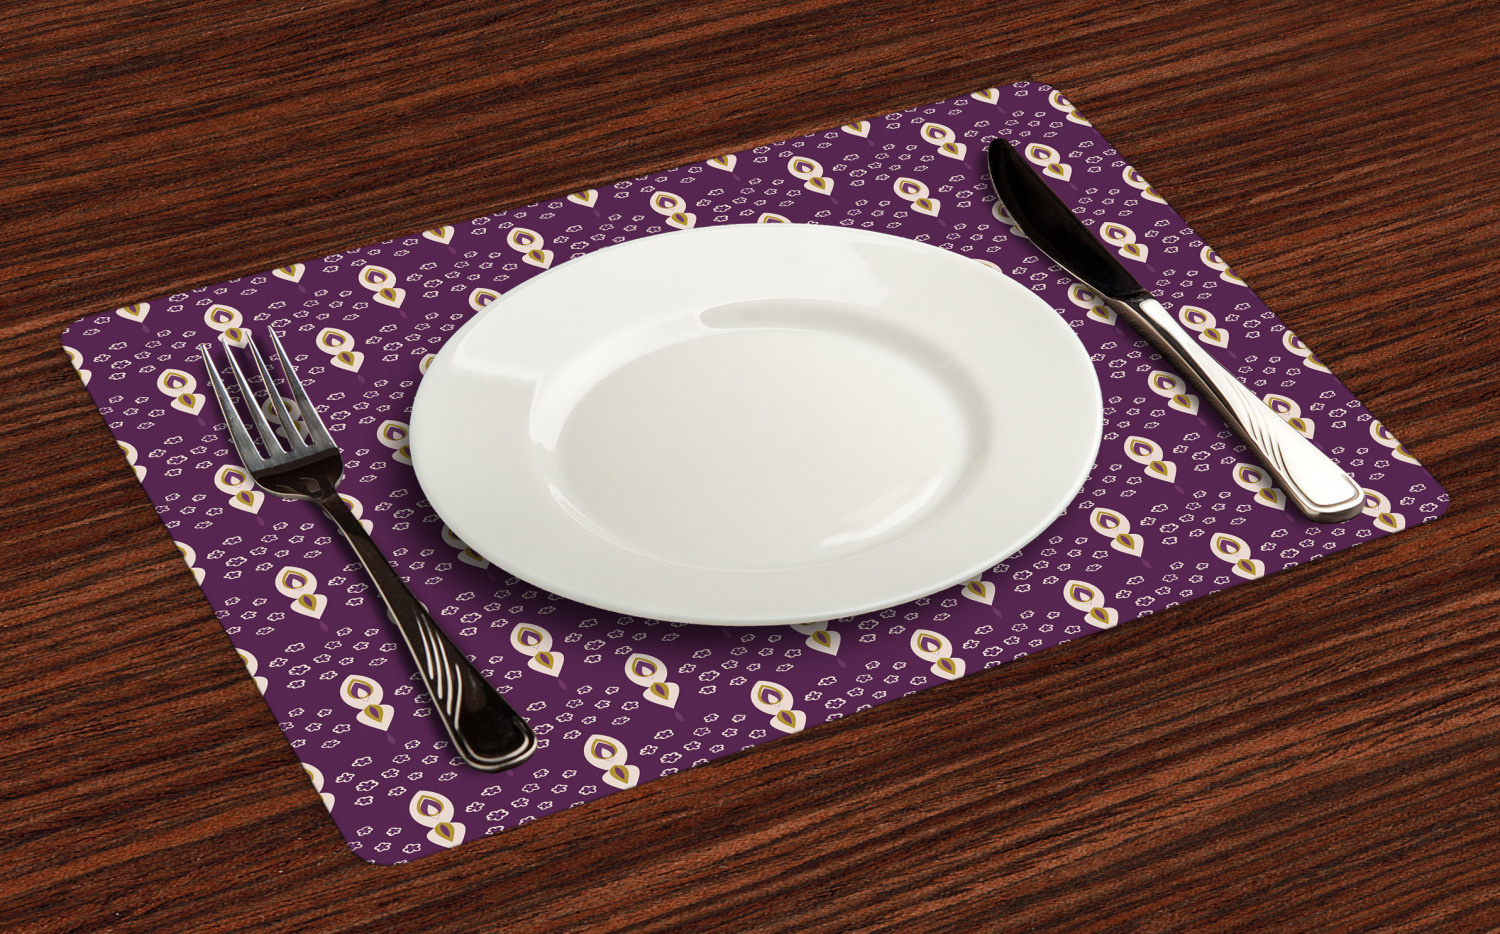 Ambesonne-Fabric-Place-Mats-Set-of-4-Placemats-for-Dining-Room-and-Kitchen-Table thumbnail 173